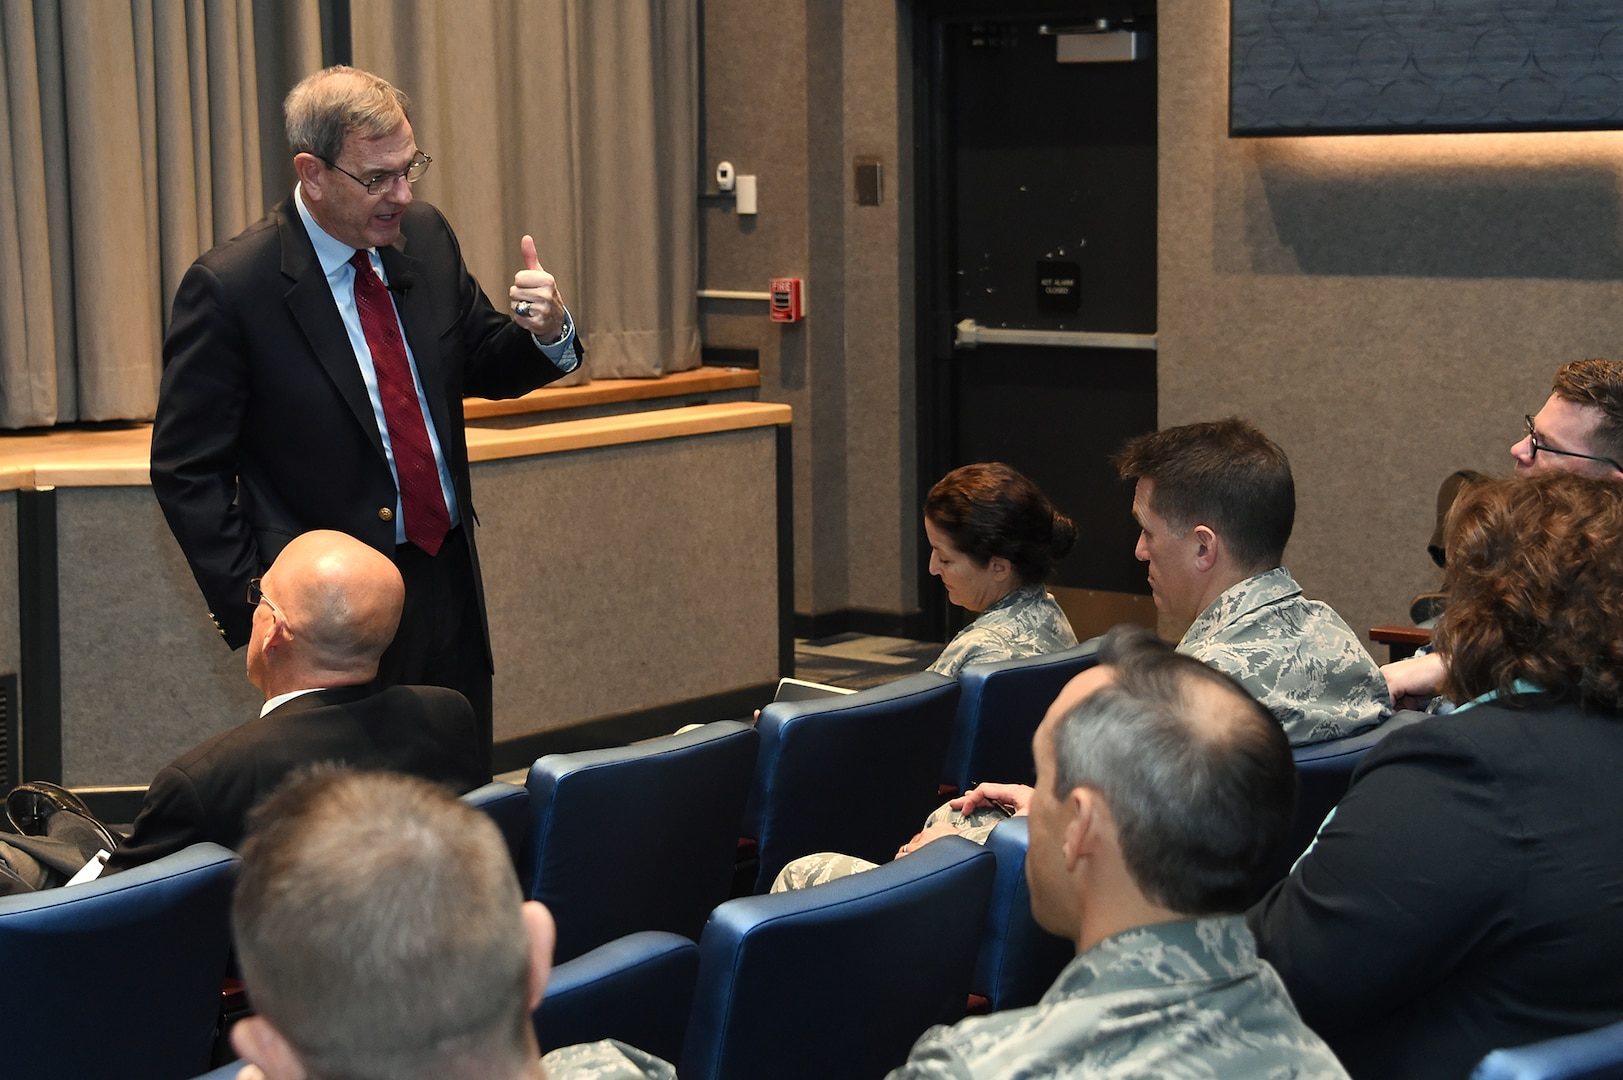 Retired U.S. Air Force Gen. Stephen Lorenz shares his perspective on leadership with members of U.S. Strategic Command during his visit to Offutt Air Force Base, Neb., Nov. 6, 2017. Lorenz, who retired as commander of Air Education and Training Command, discussed the traits and practices of effective leaders based on his experience as a military officer and commander.